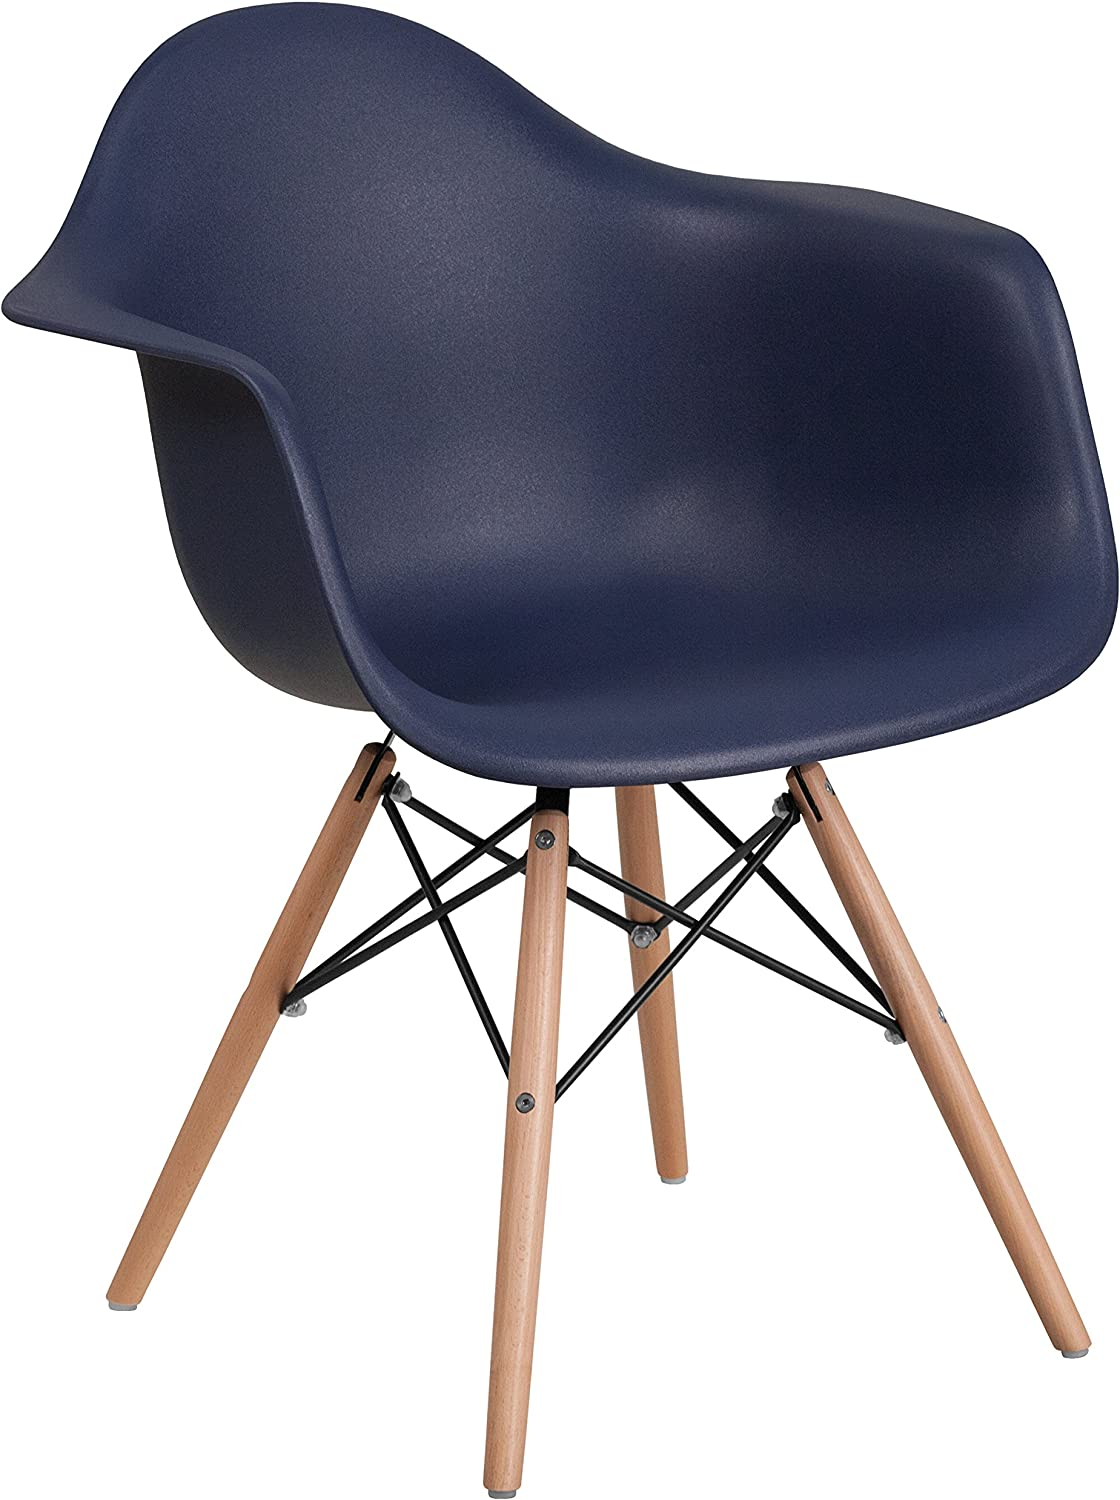 Flash Furniture Alonza Series Navy Plastic Chair with Wooden Legs